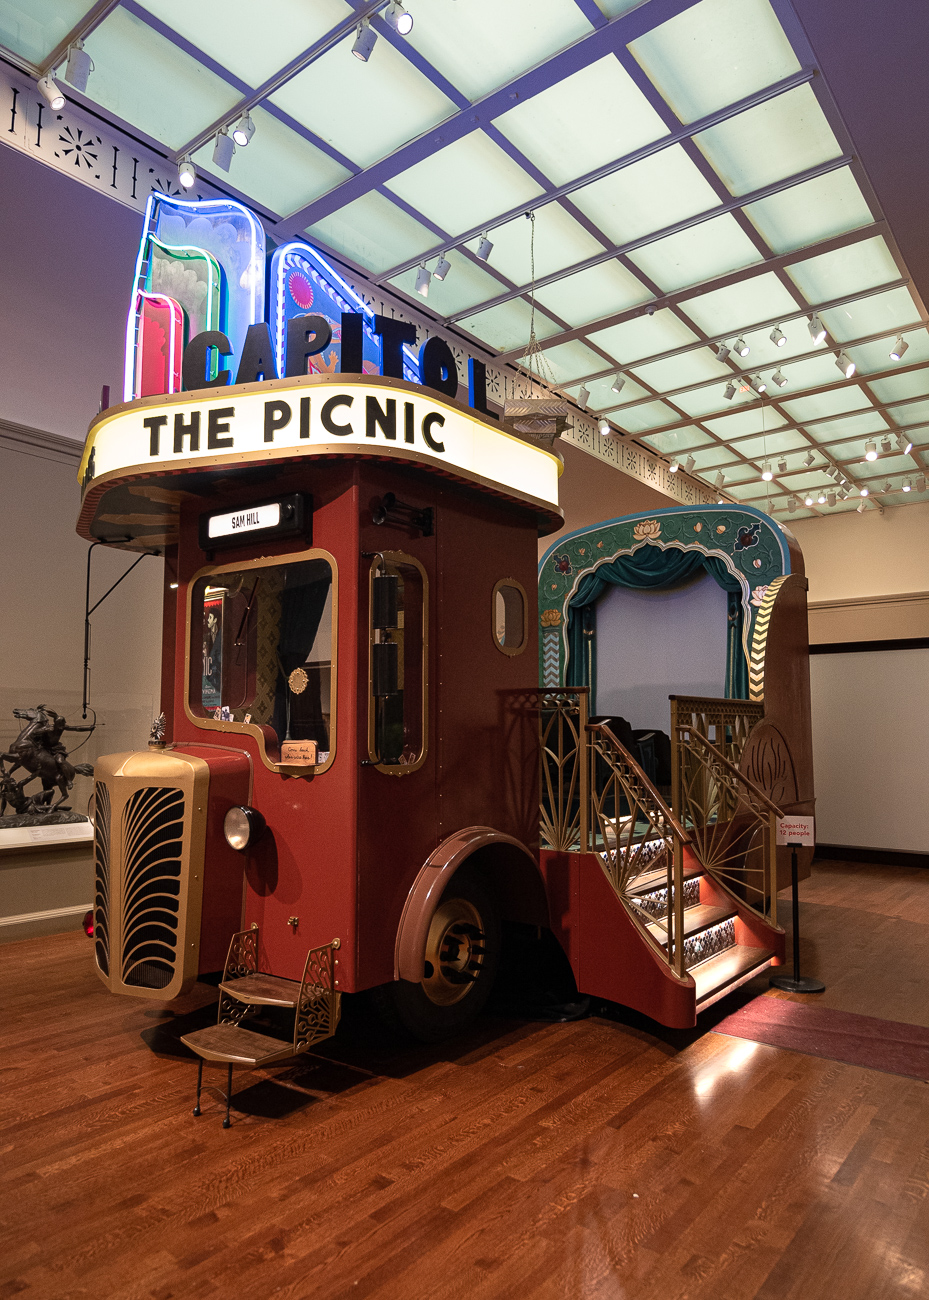 Pictured: Capitol Theater (2018) by Five Ton Crane / No Spectators: The Art of Burning Man, while still smoldering from its hot feature in DC's prestigious Renwick Gallery, spreads its colorful tendrils throughout two floors of the Cincinnati Art Museum from now until September 2, 2019. CAM is the only museum in the entire Midwest that's planned to receive the show, attracting spectators (despite its title) from peer cities around the country. Burning Man is a contemporary art show that gathers in the desert outside Reno, Nevada once a year. The exhibit, which pulls art from Burning Man, puts installations in various galleries throughout the museum to encourage exploration. / Image: Phil Armstrong, Cincinnati Refined // Published: 6.21.19